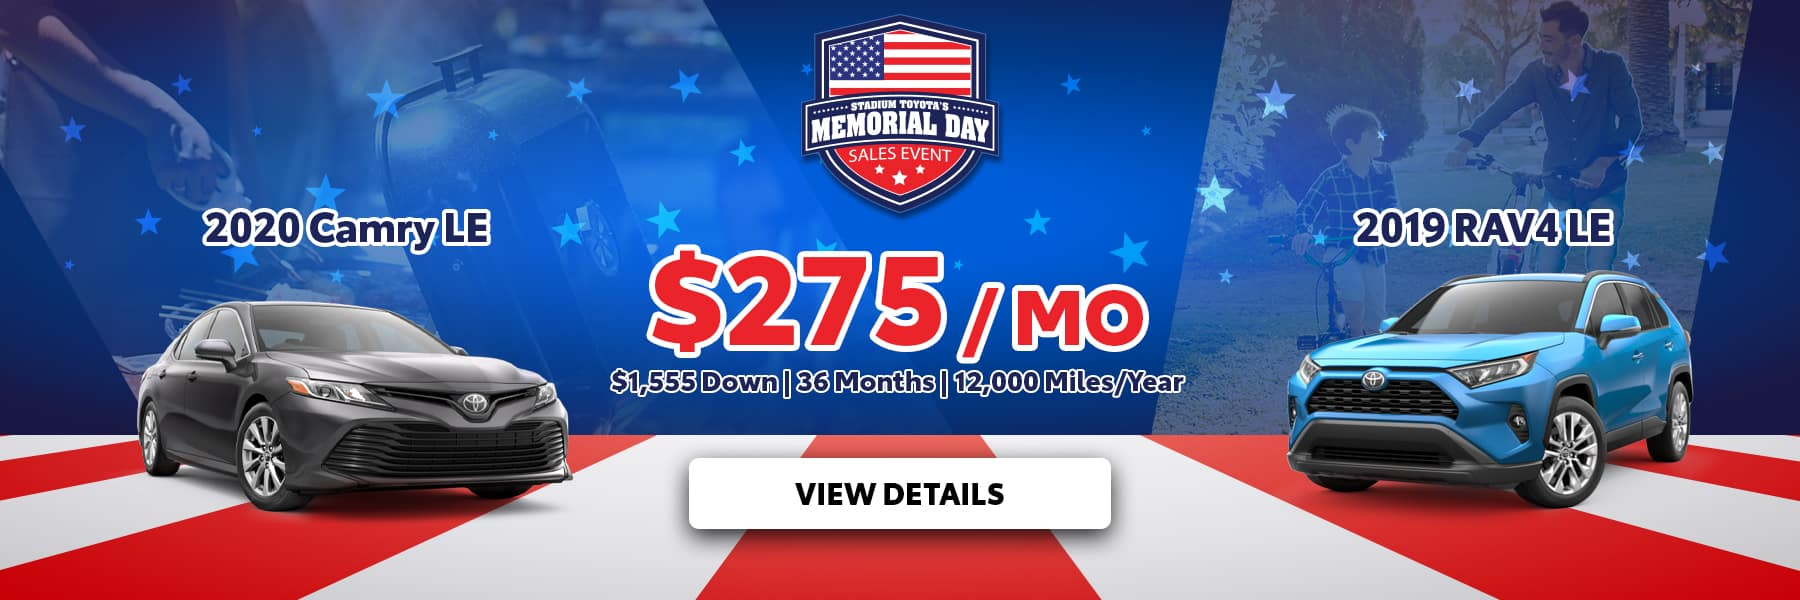 Memorial Day Camry RAV4 Offer